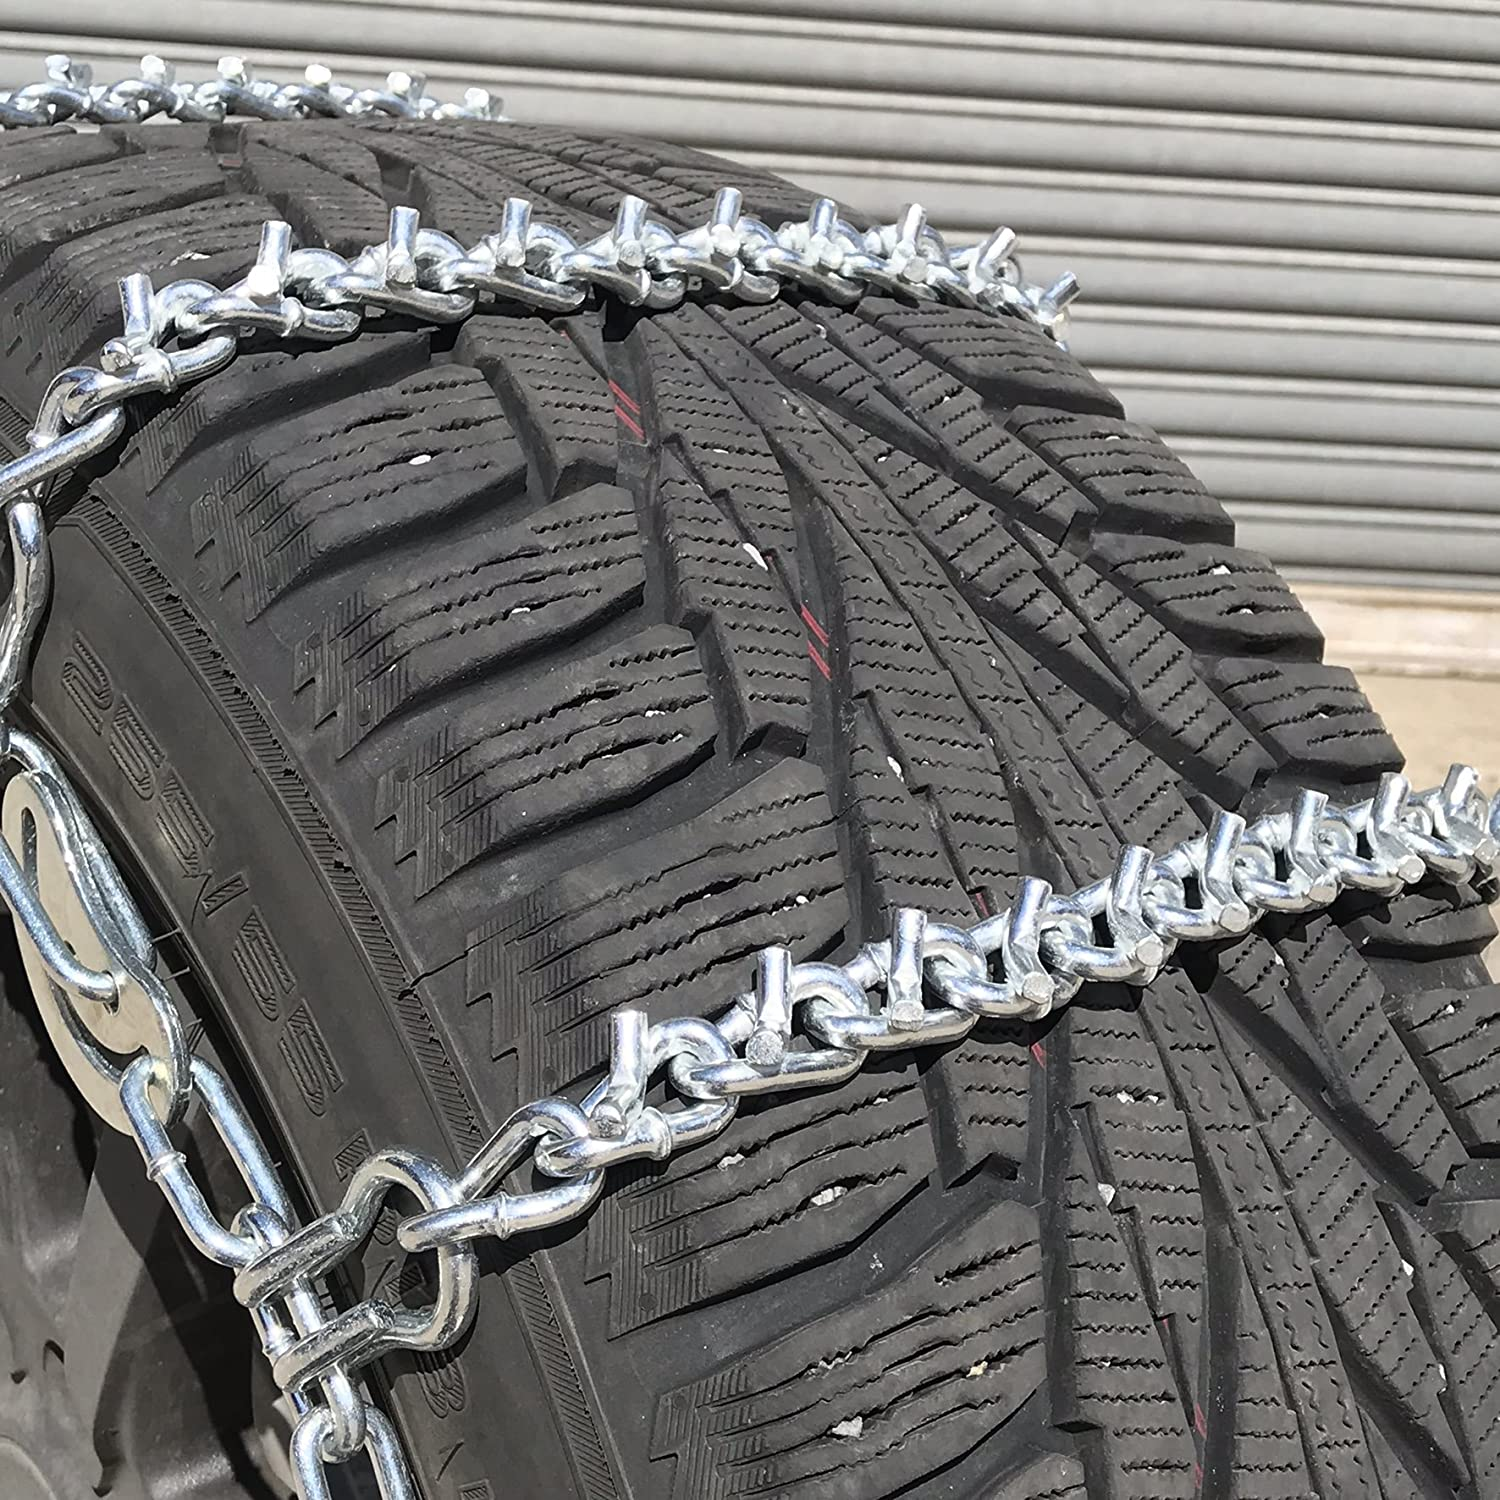 265//70-16 VBAR Tire Chains TireChain.com 3810 P265//70R-16 Priced per Pair.